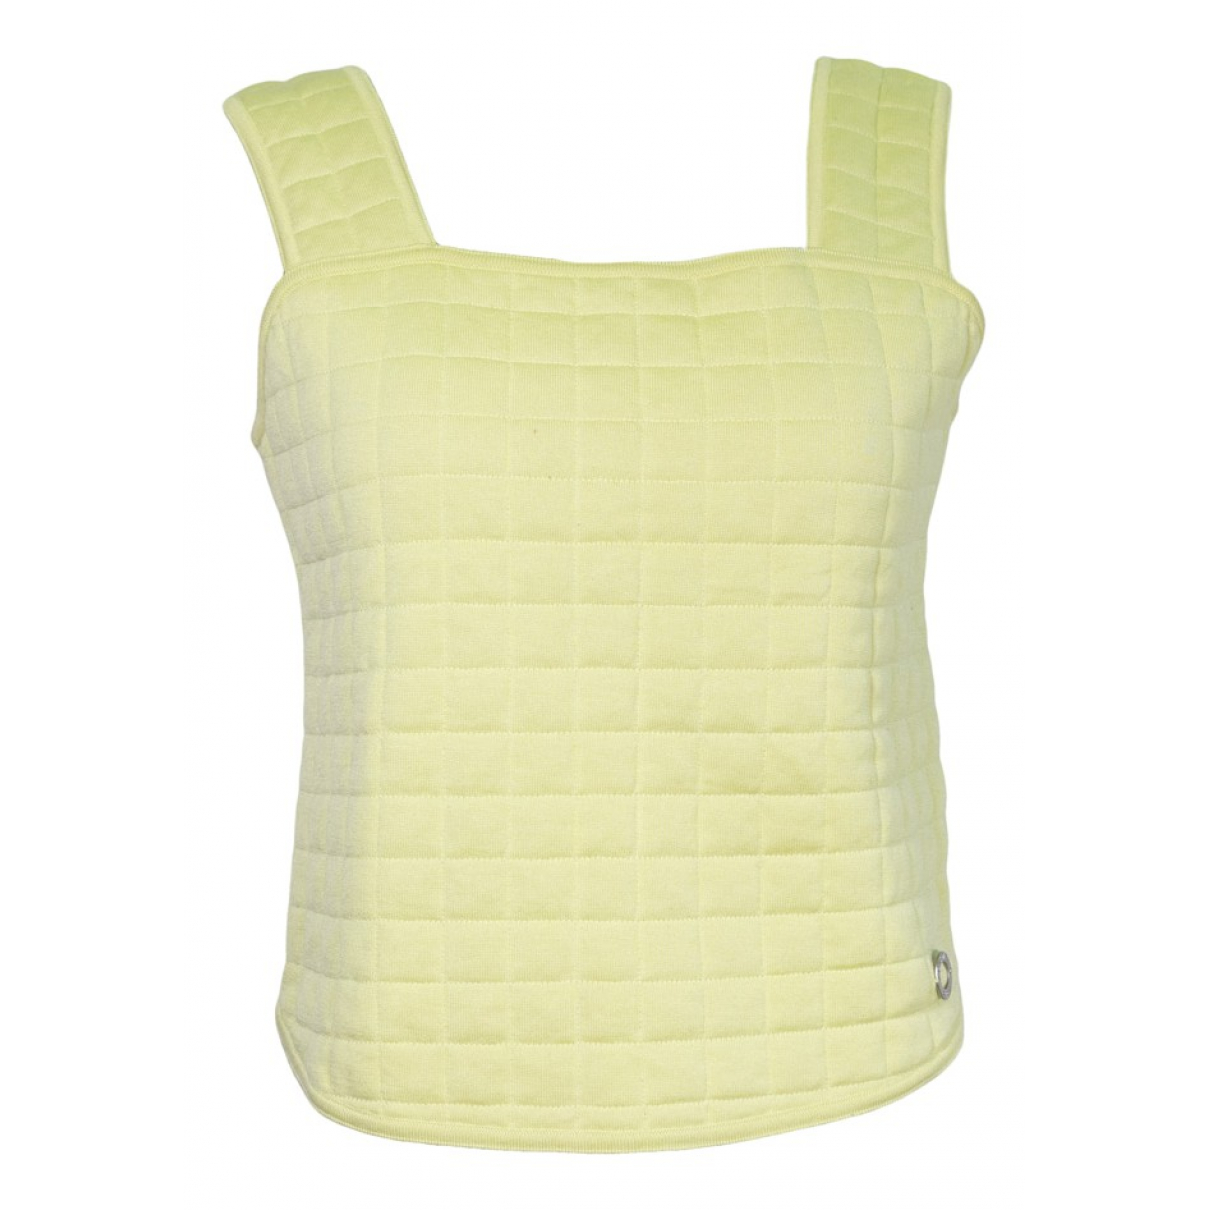 Chanel \N Green Cotton  top for Women 40 FR